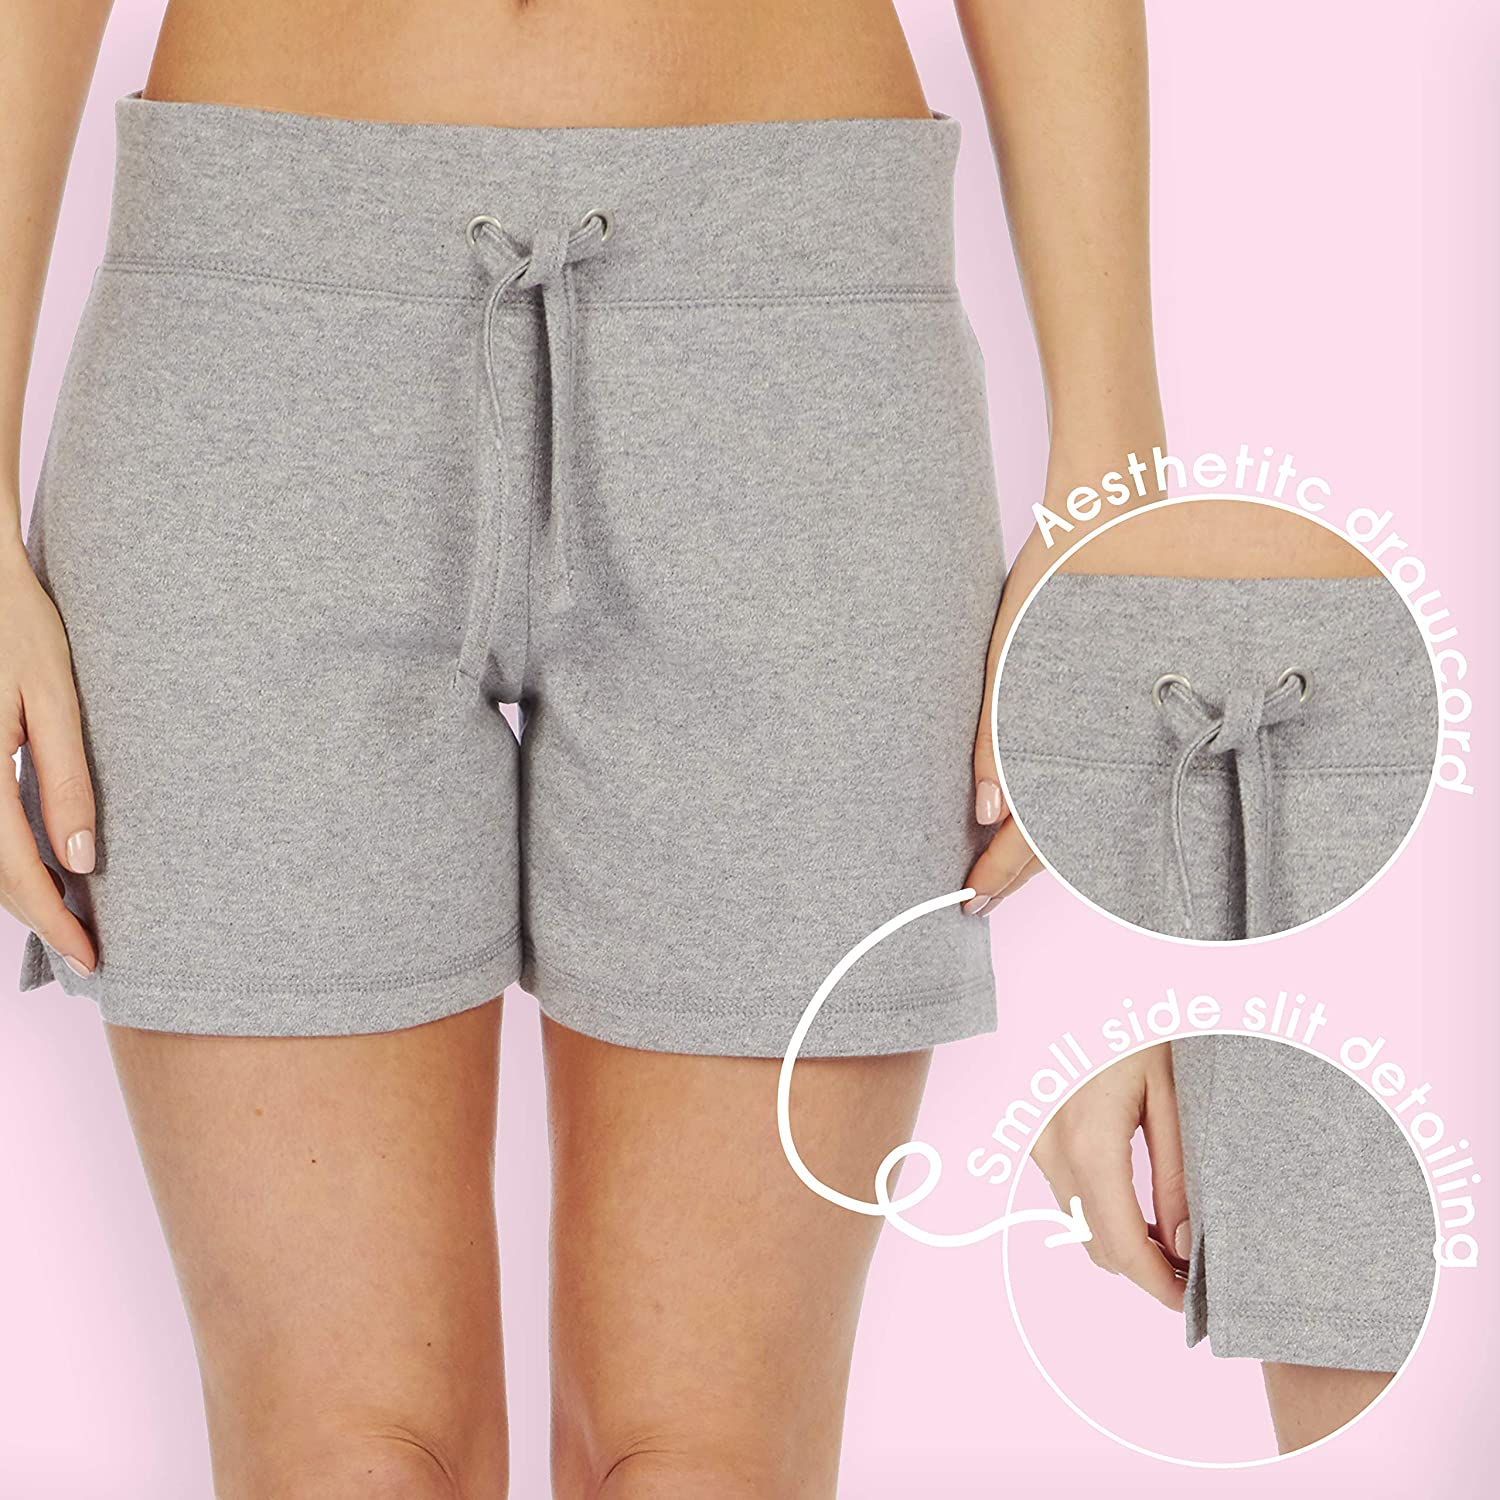 87968da6d90b Label your Love Womens Colourful Jesey Cotton Hot Pant Summer Shorts:  Amazon.co.uk: Clothing